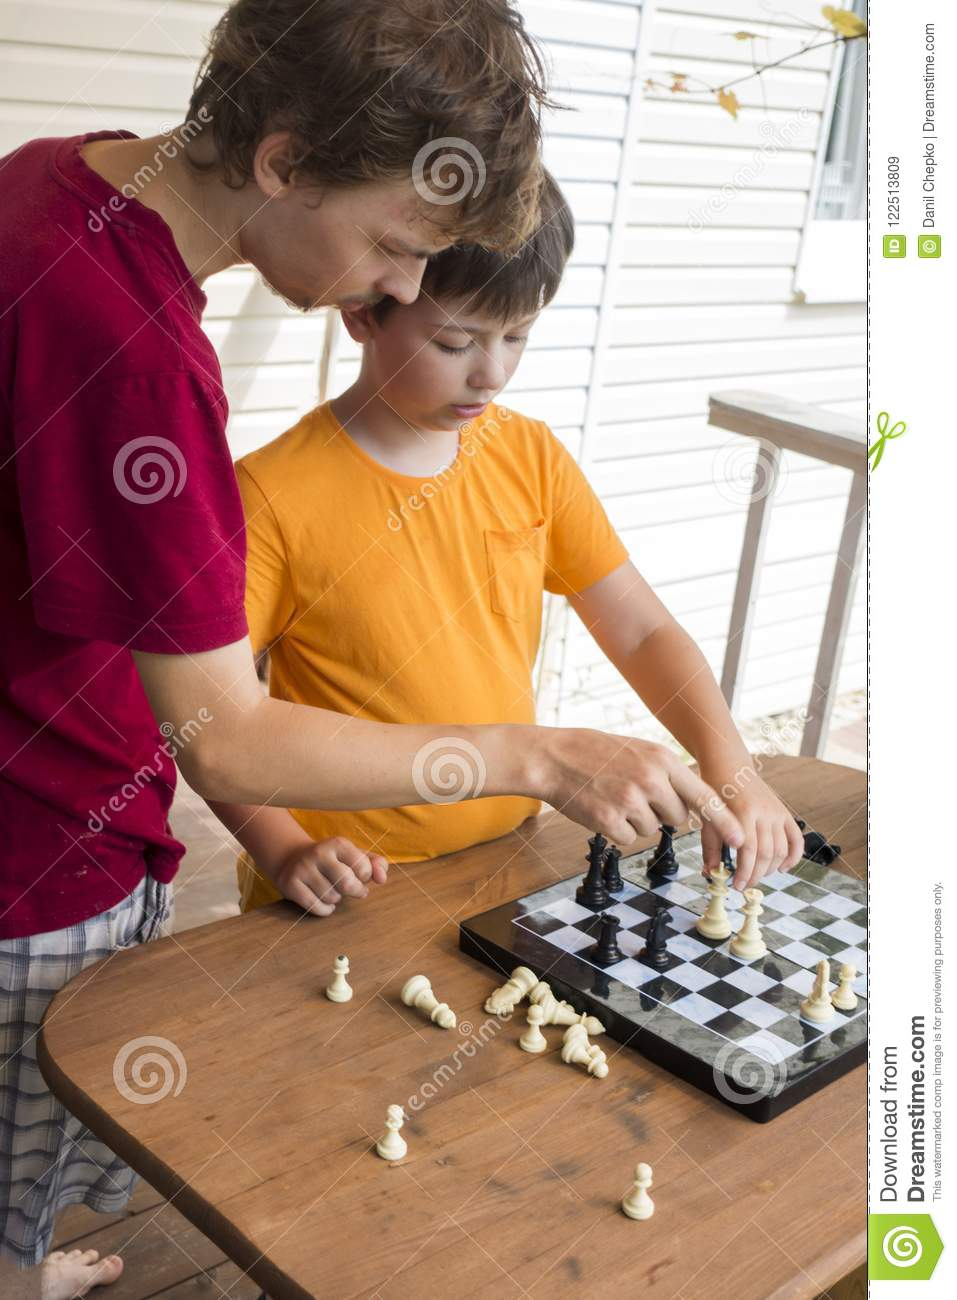 Download Child Playing Chess Outdors, Young Boy Making A Move Stock Image - Image of concentration, caucasian: 122513809